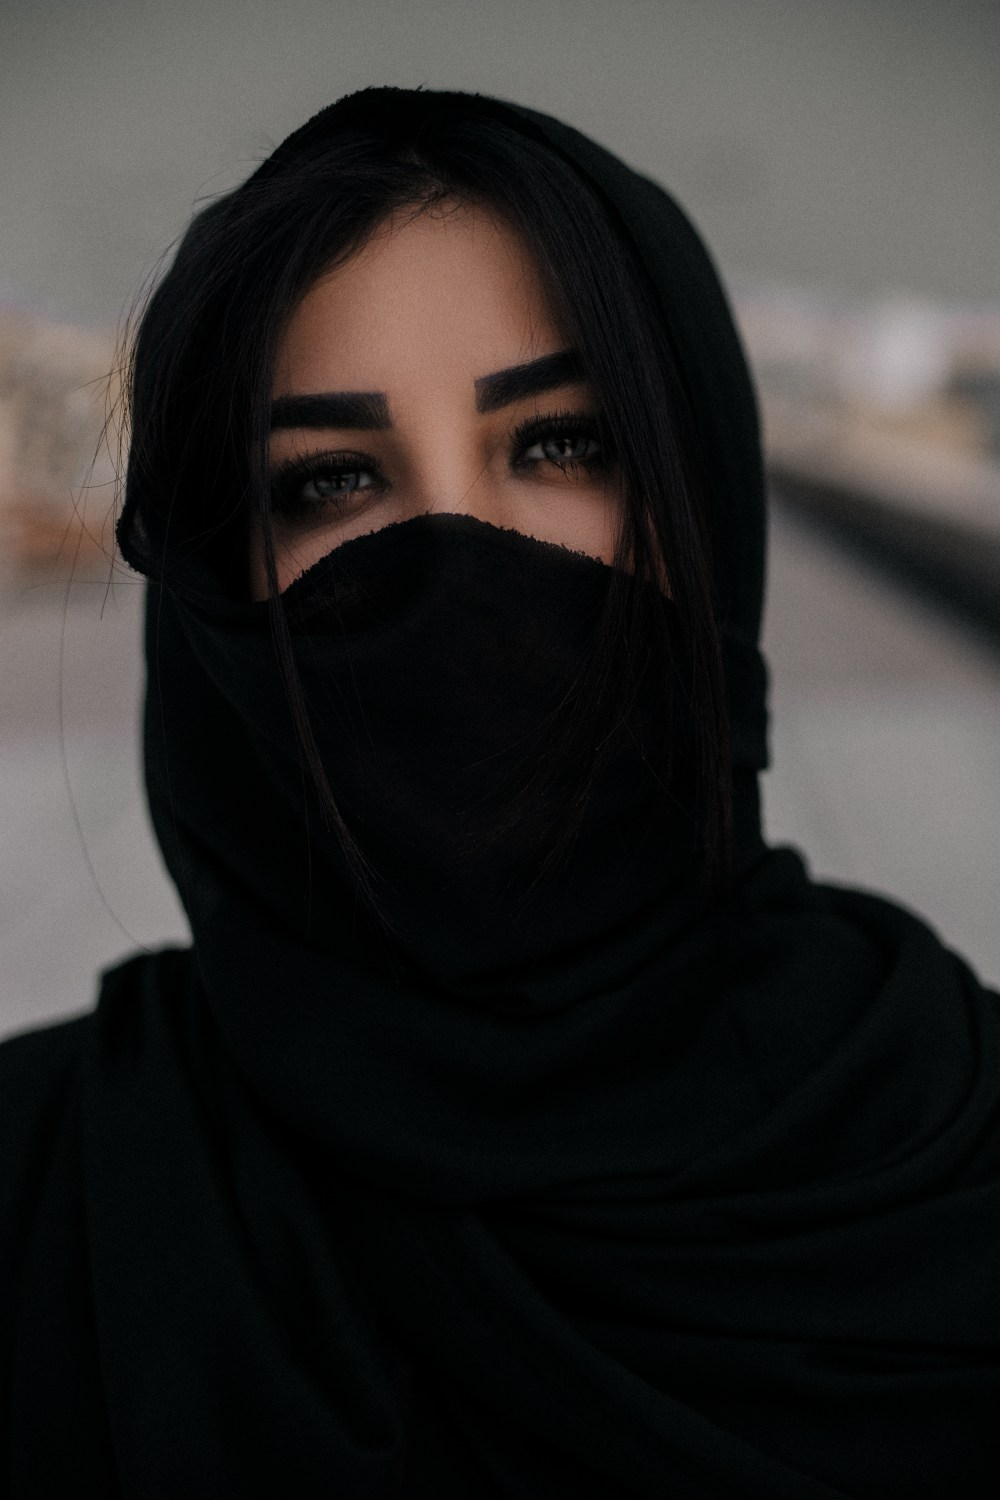 Cute anime profile pictures, matching profile pictures, anime. 500 Hijab Pictures Hd Download Free Images On Unsplash